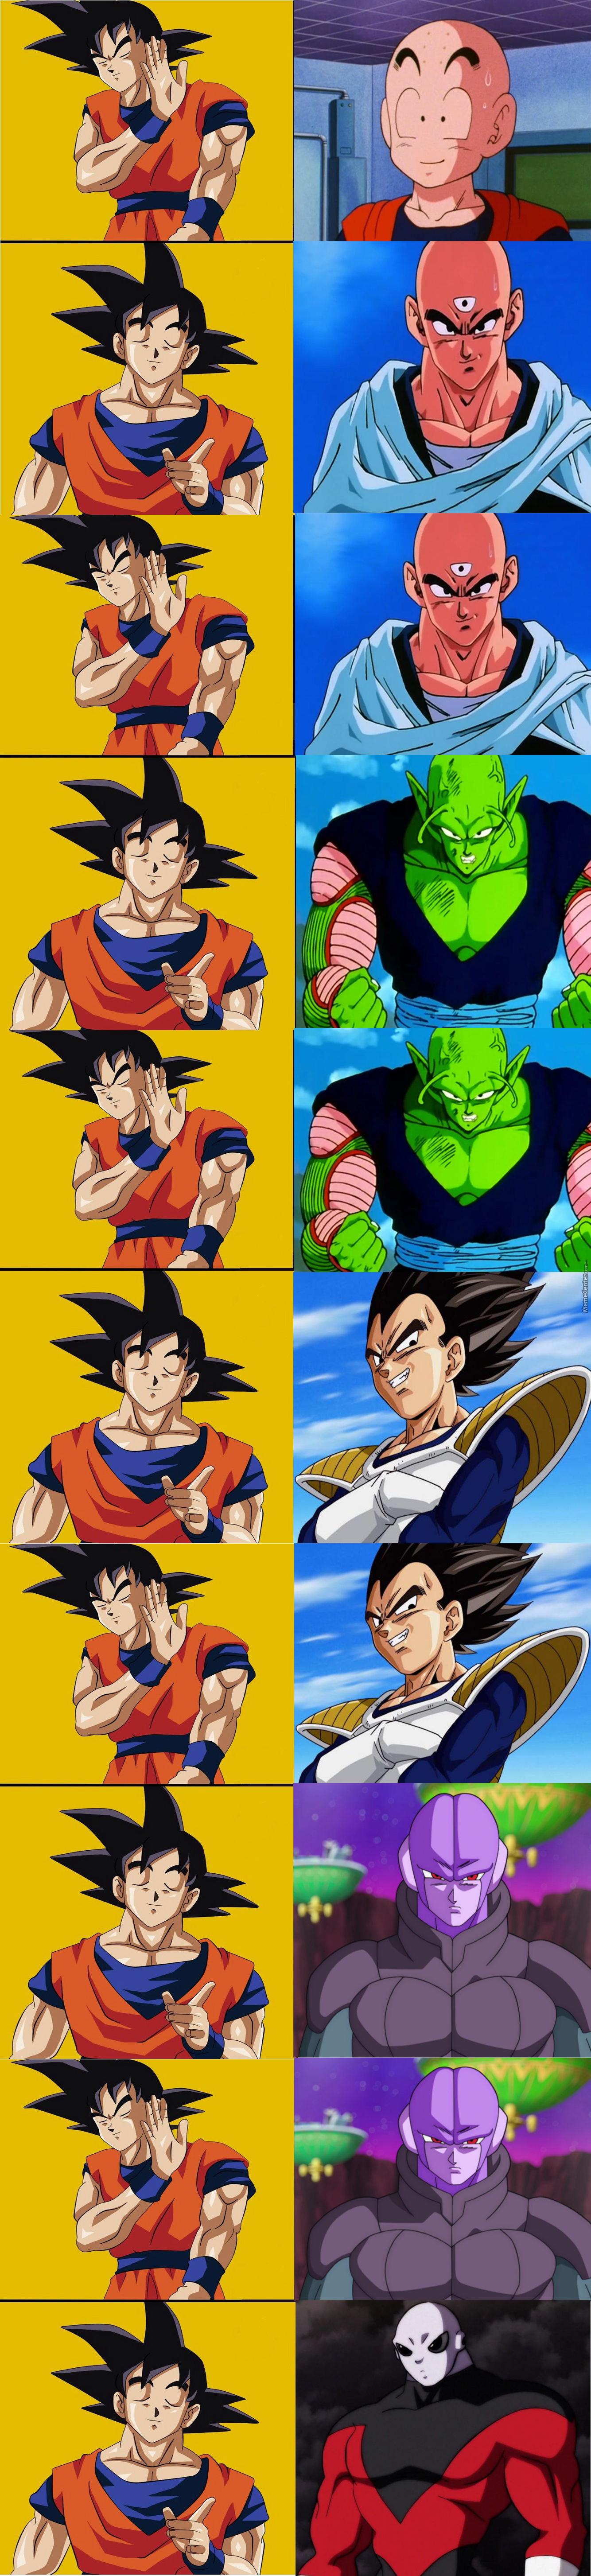 Goku's Such A Whore